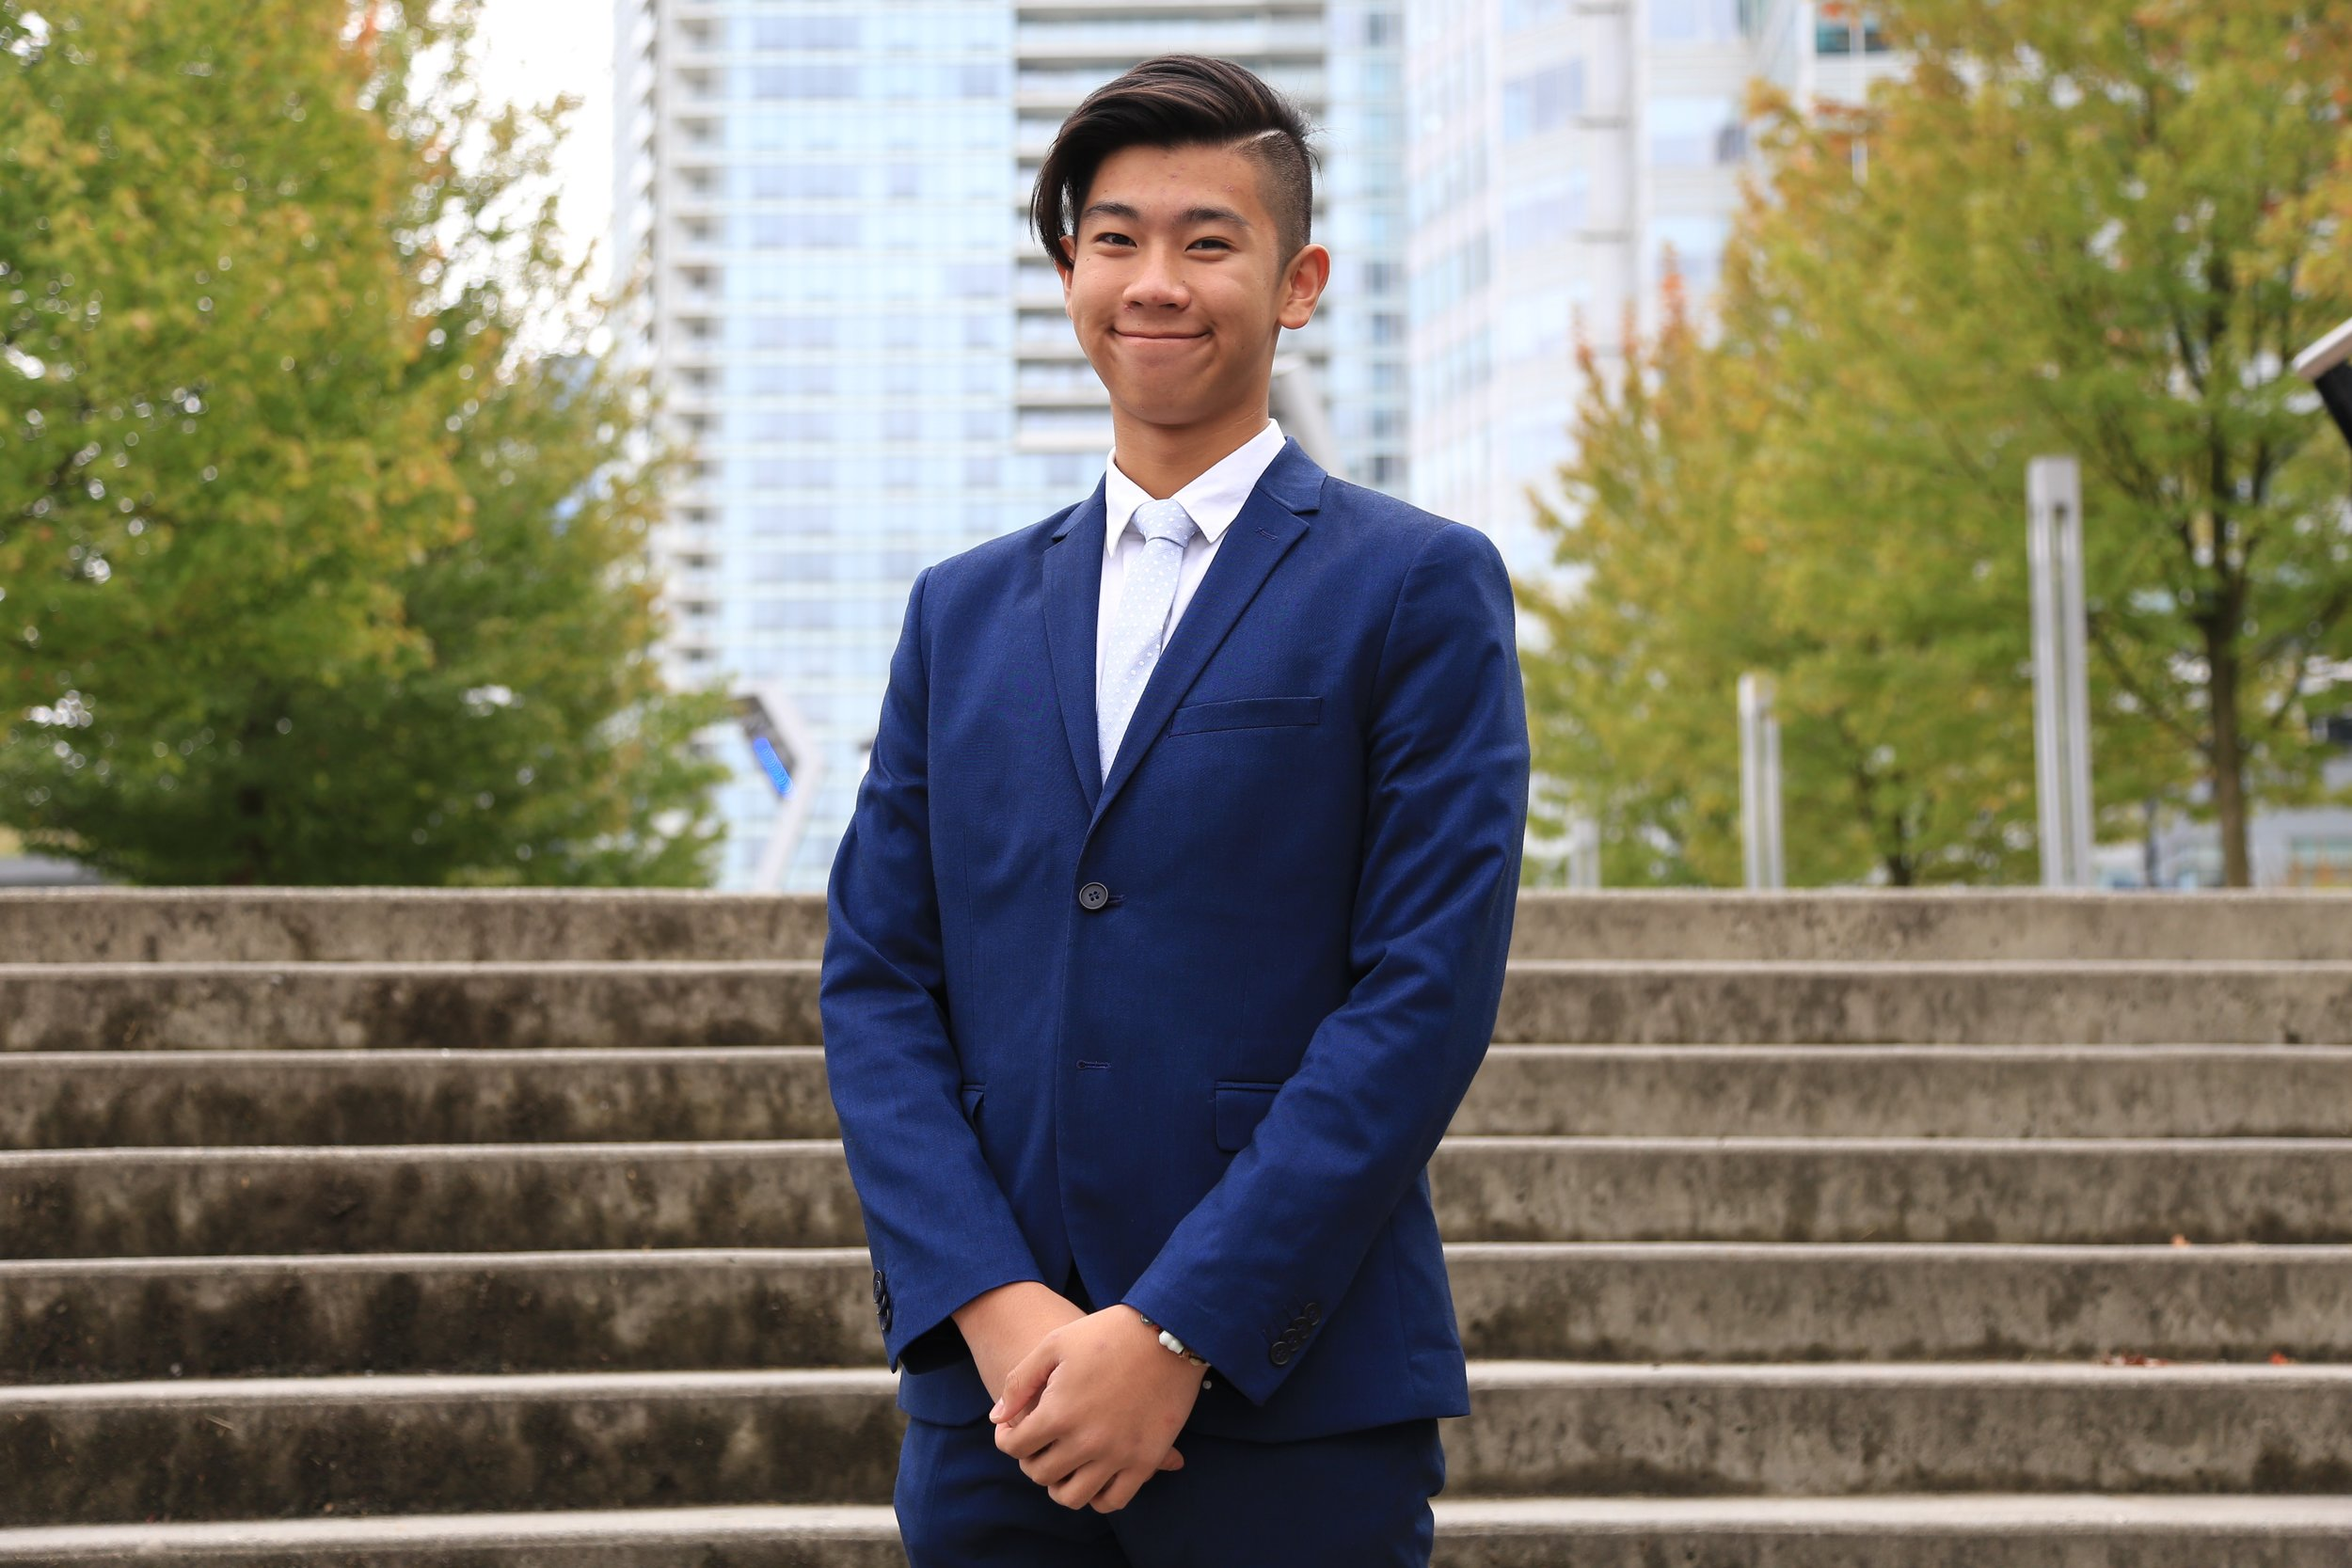 Media Production Director - Eric Cheng